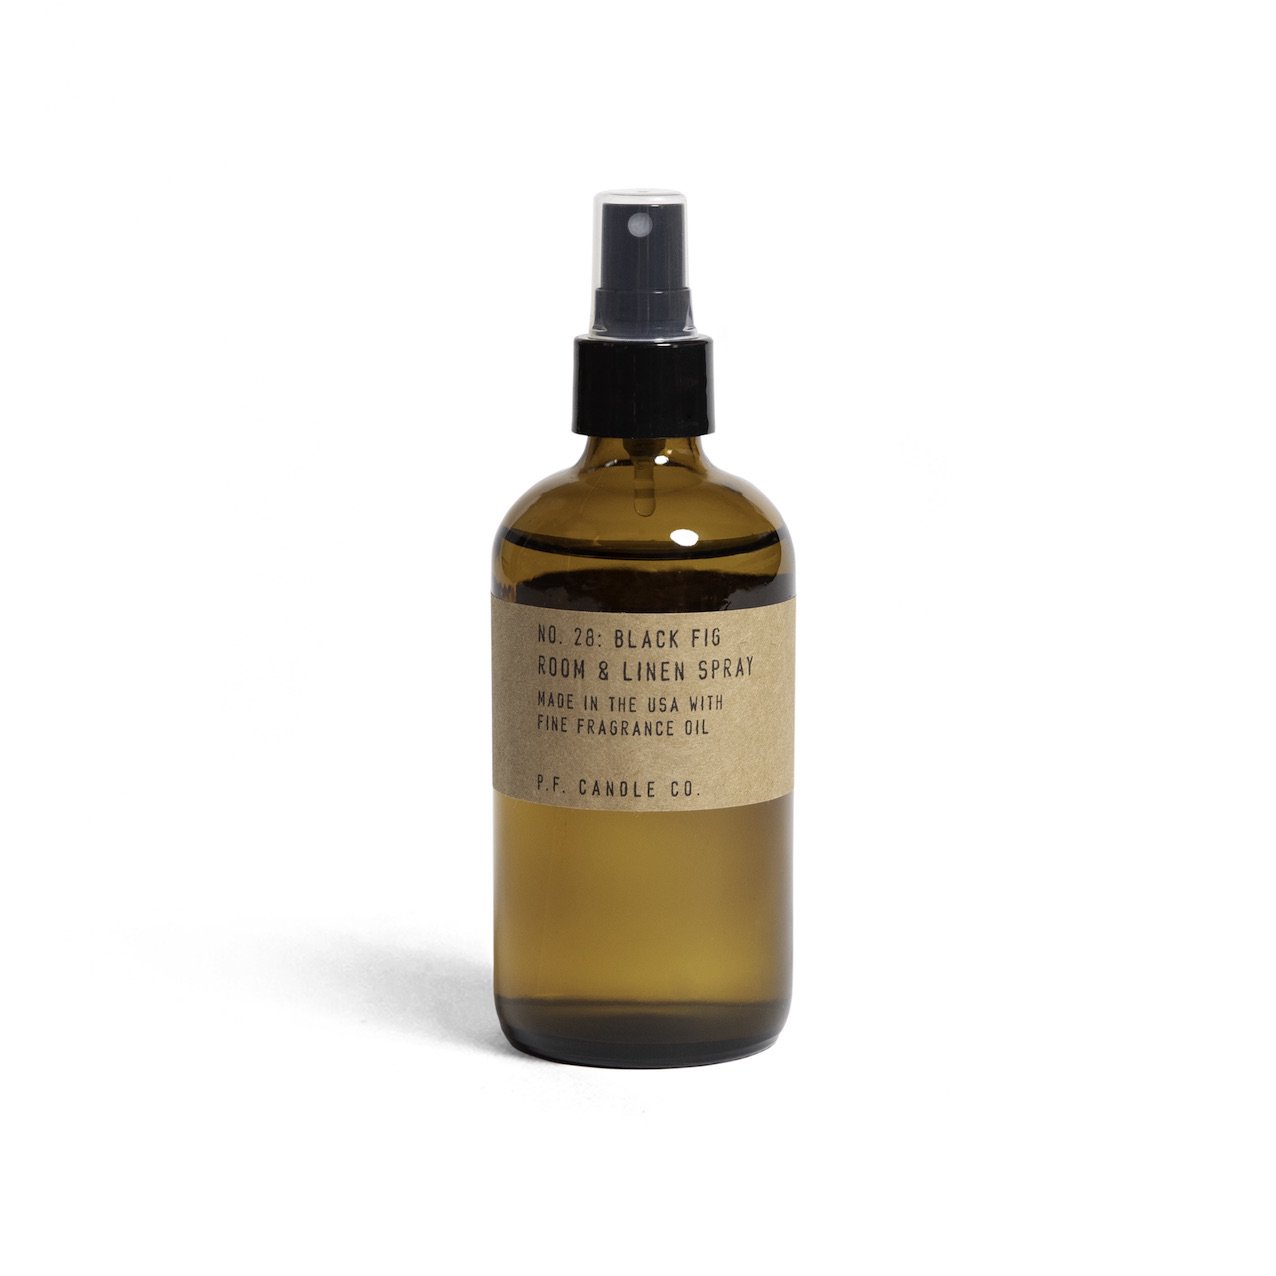 P.F. CANDLE CO.   #Room&Linen Spray / 28 BLACK FIG